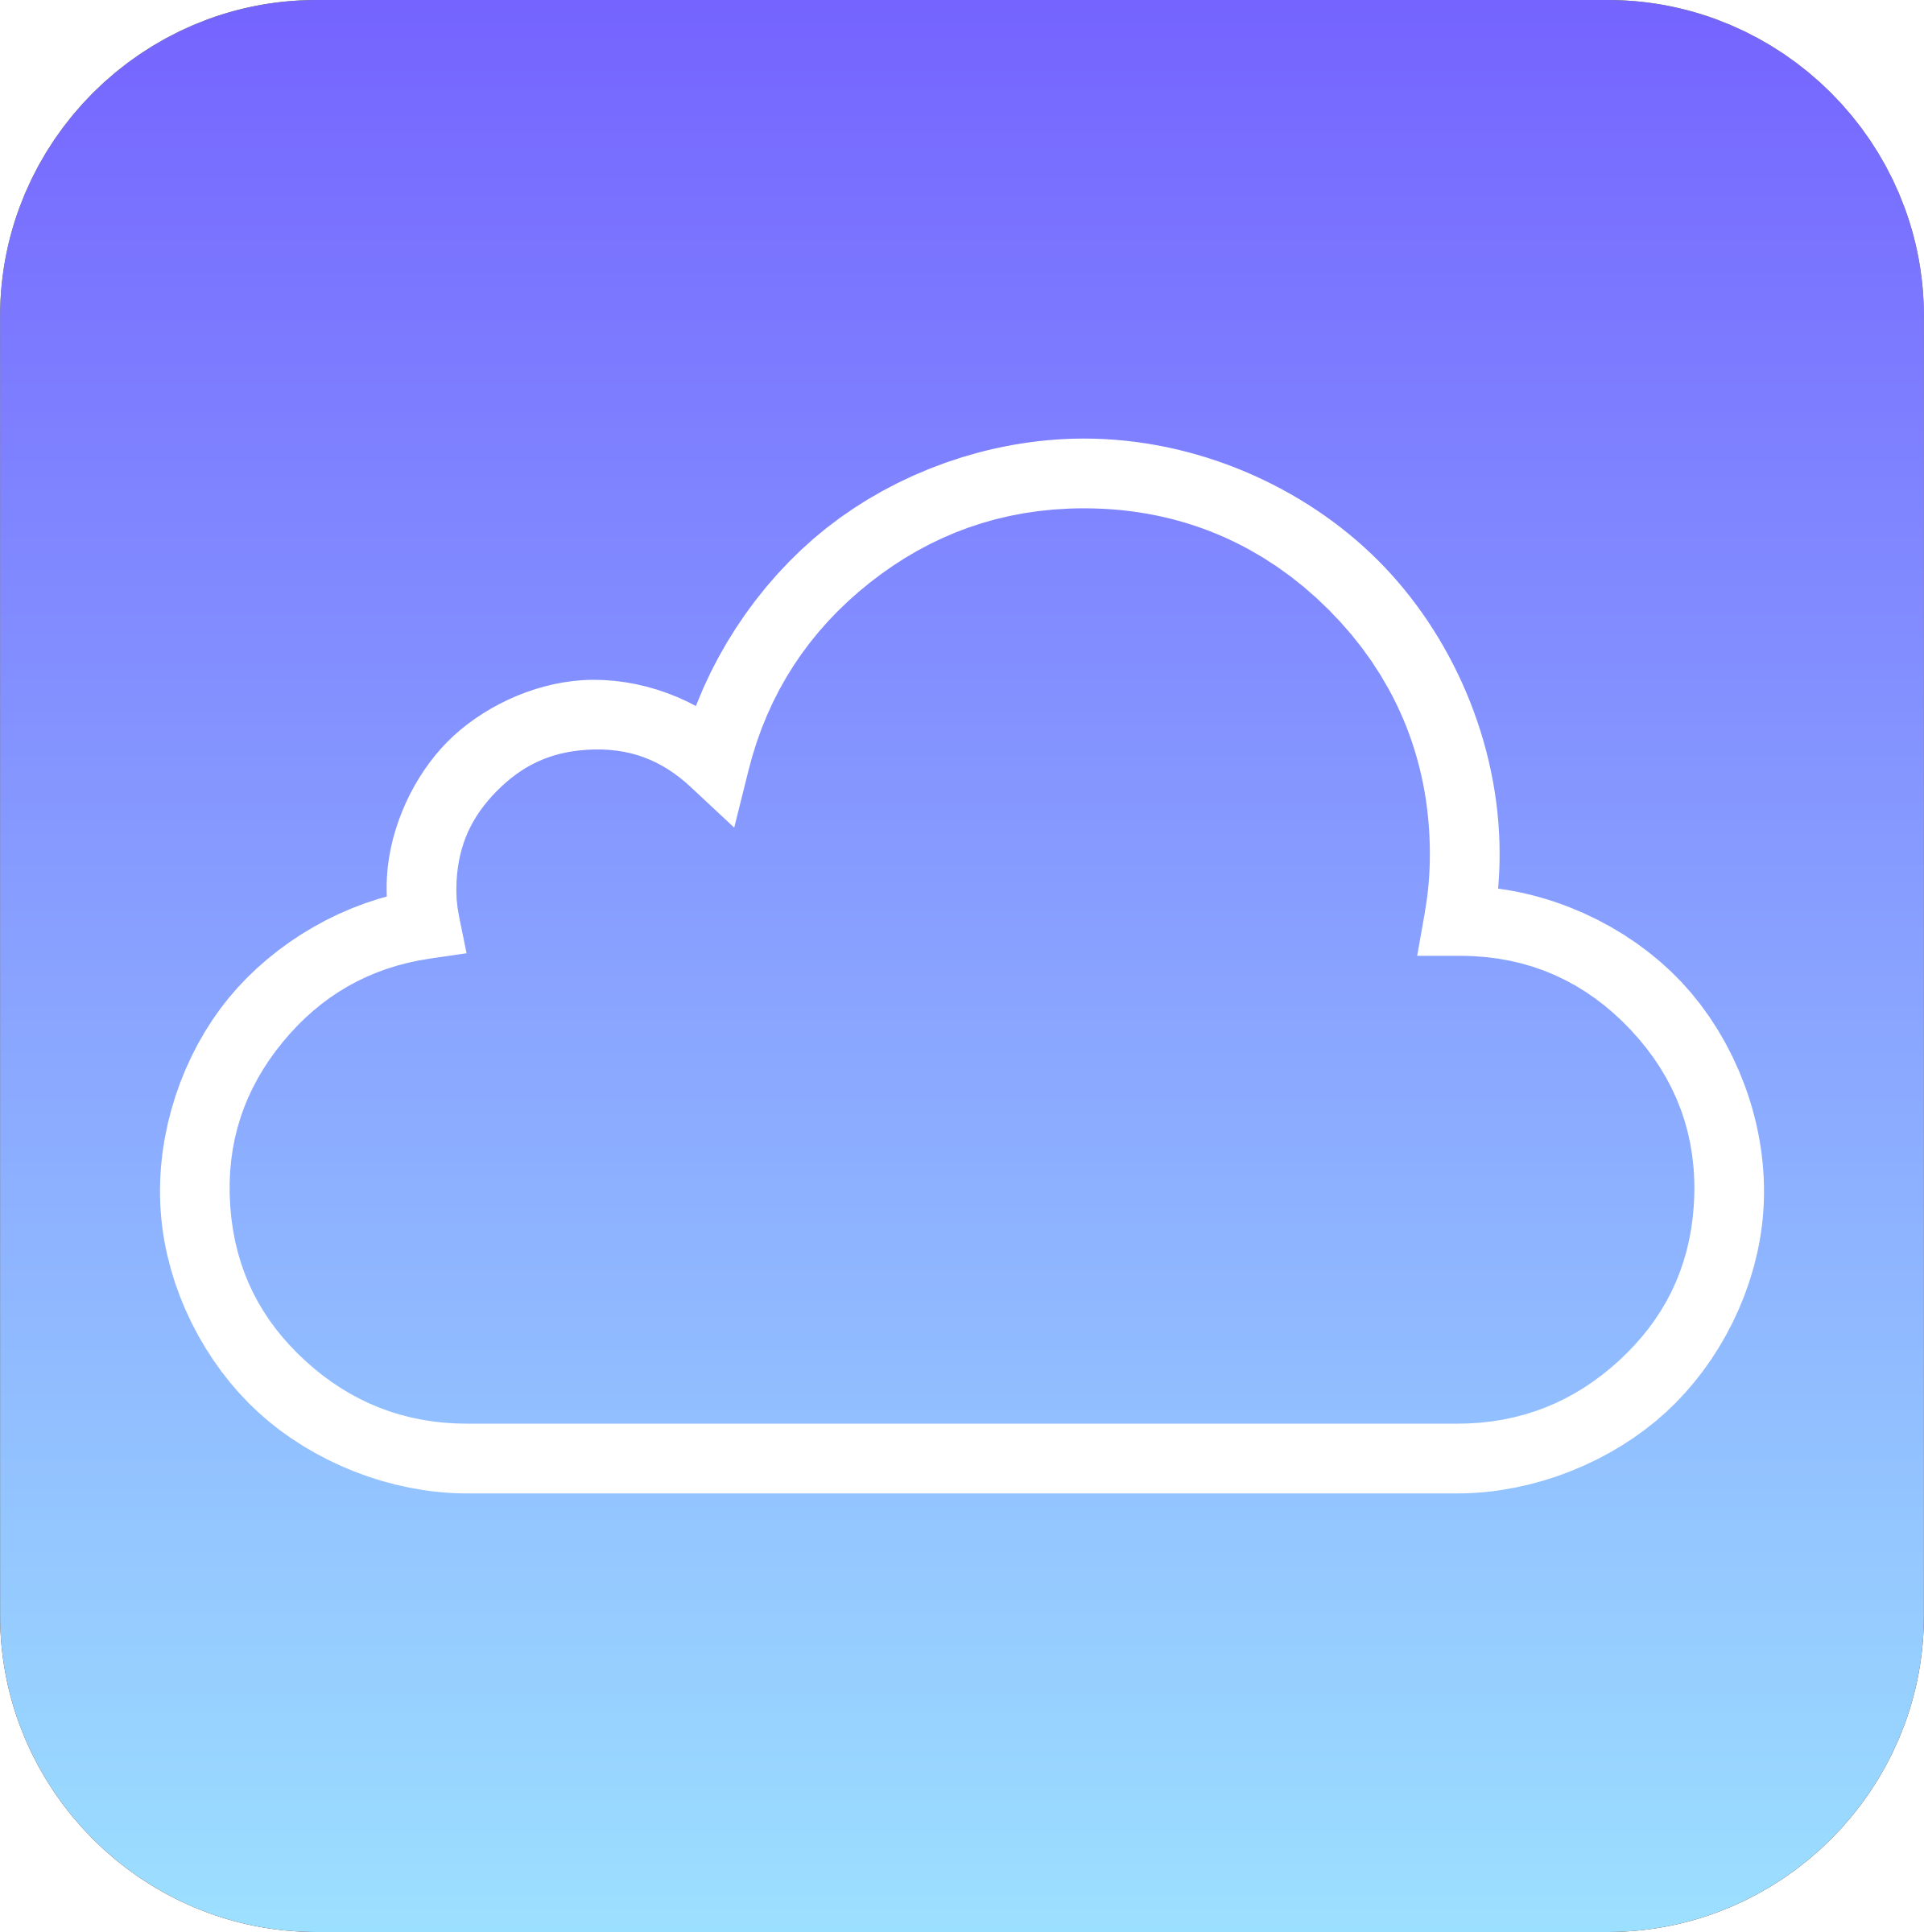 Simple Cloud Icon by GDJ